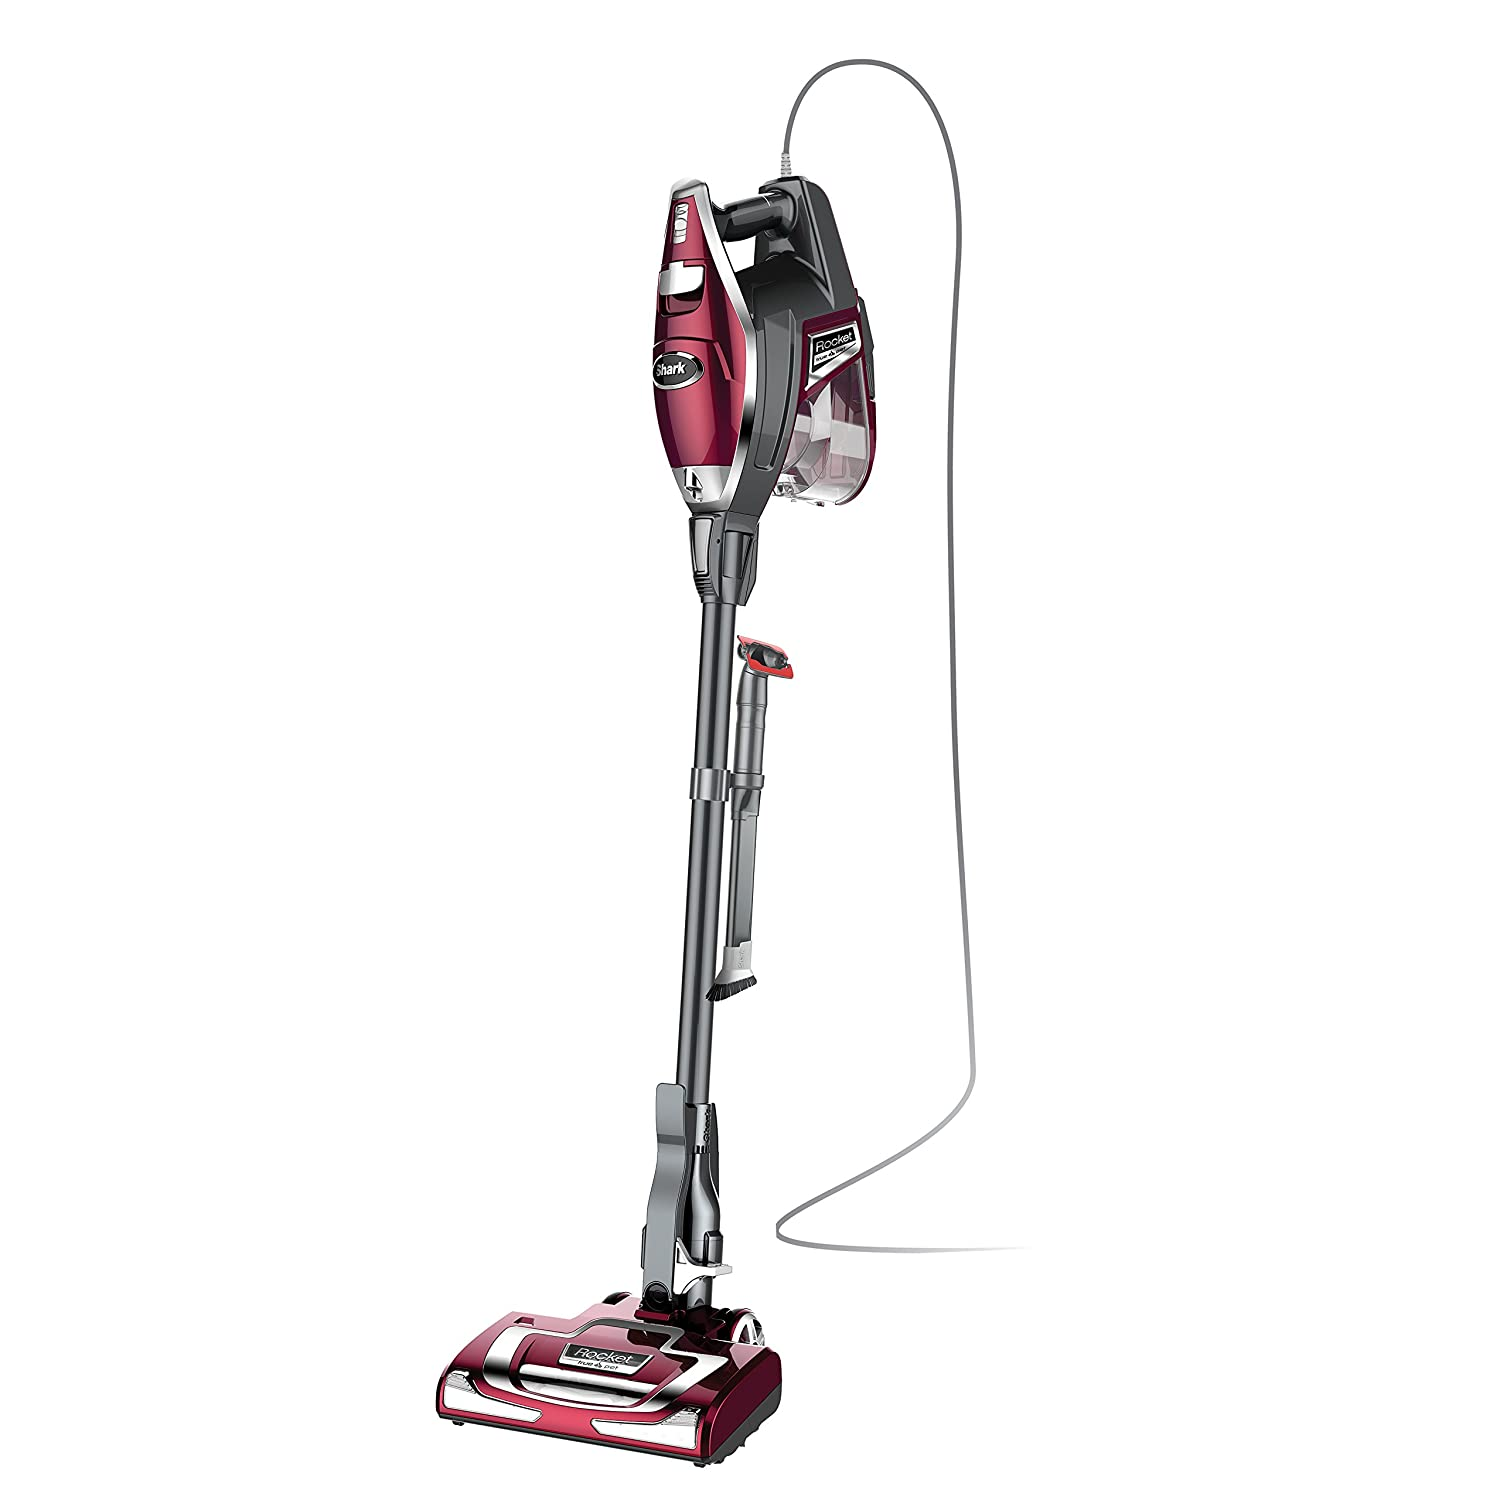 Shark Rocket TruePet Ultra-Light HV322 – Best vacuum for pet hair for quick cleanups